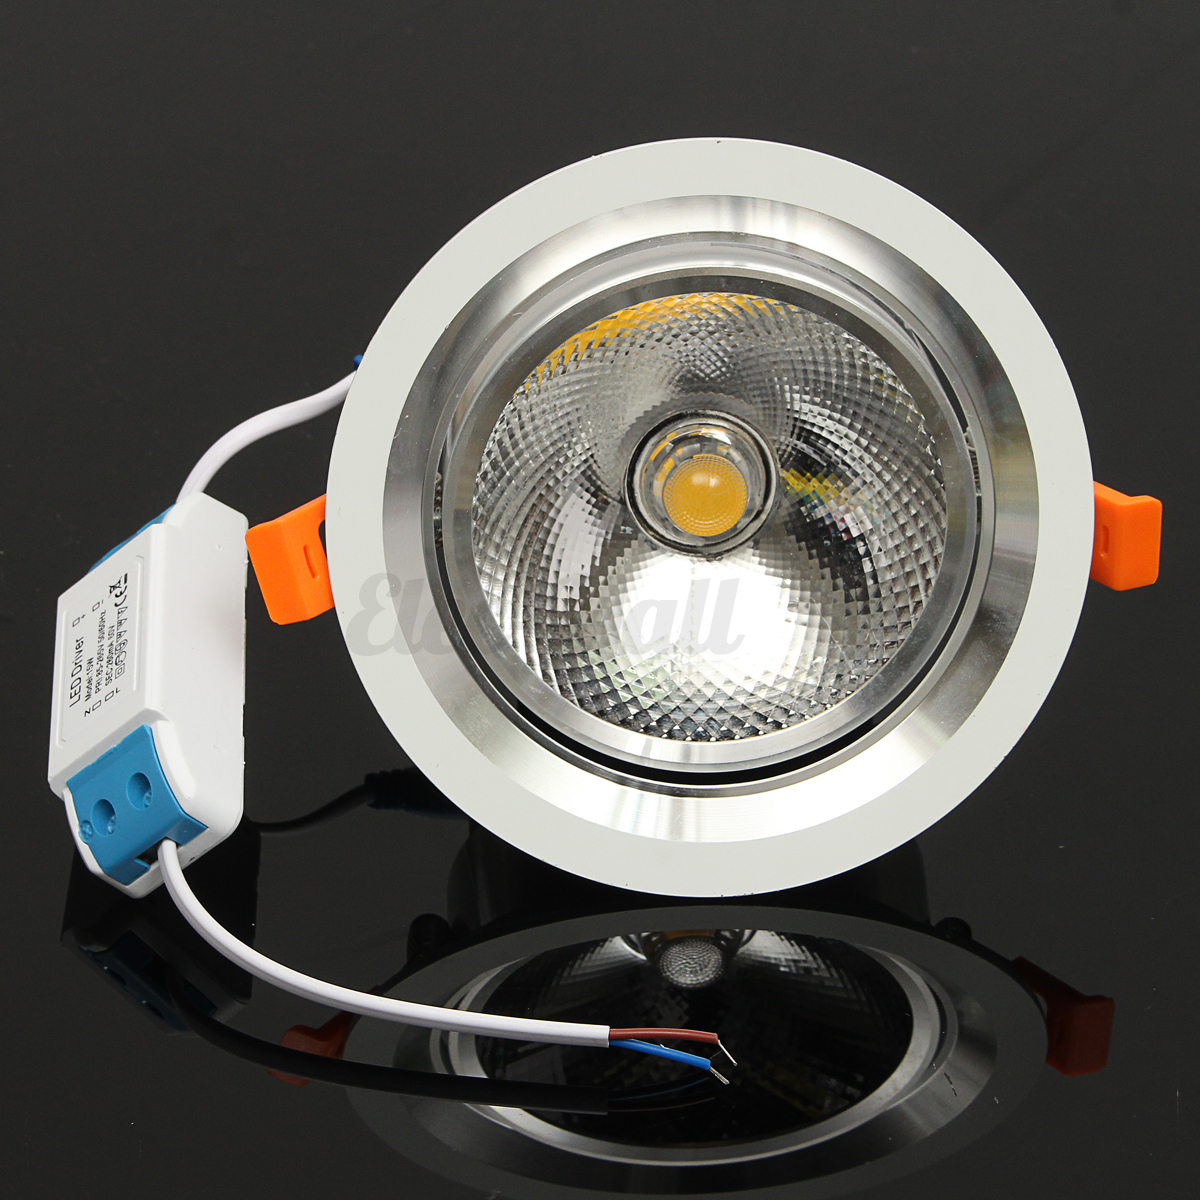 Ceiling Adjustable Lamp: Adjustable LED Recessed Ceiling Panel Light Lamp Cup Mount